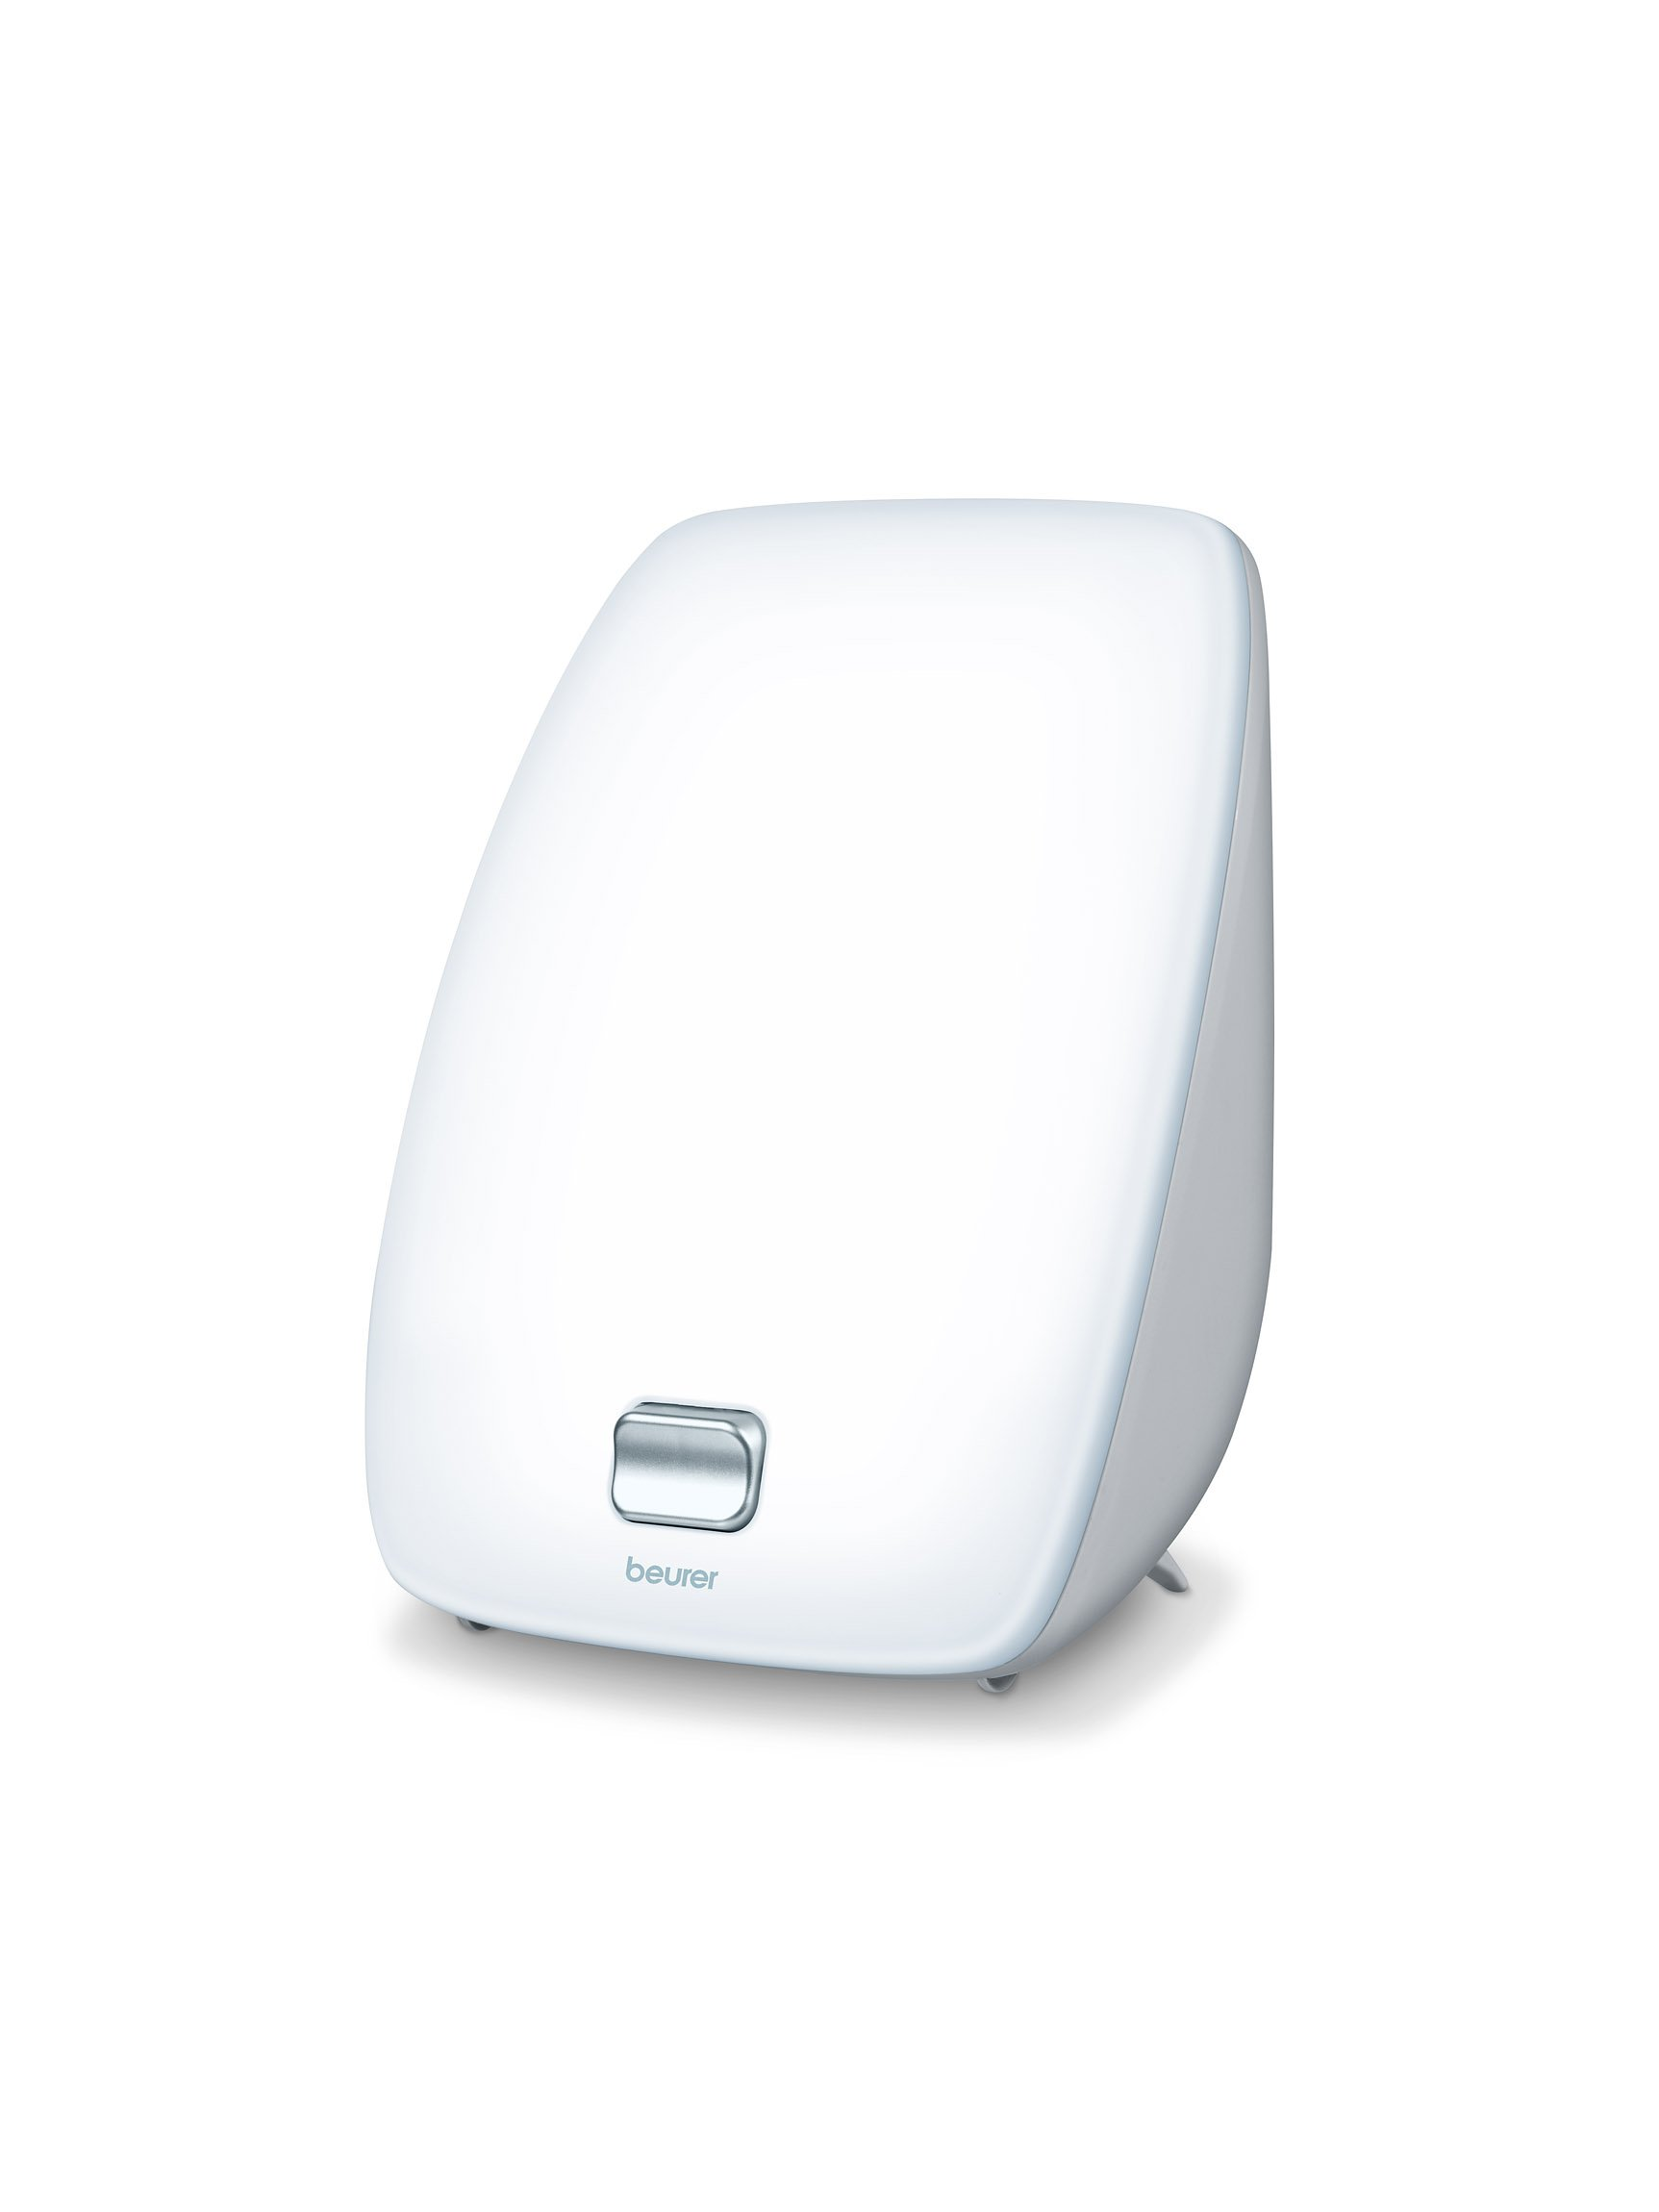 Beurer - TL 41 Touch Daylight Therapy Lamp - 3 Years Warranty